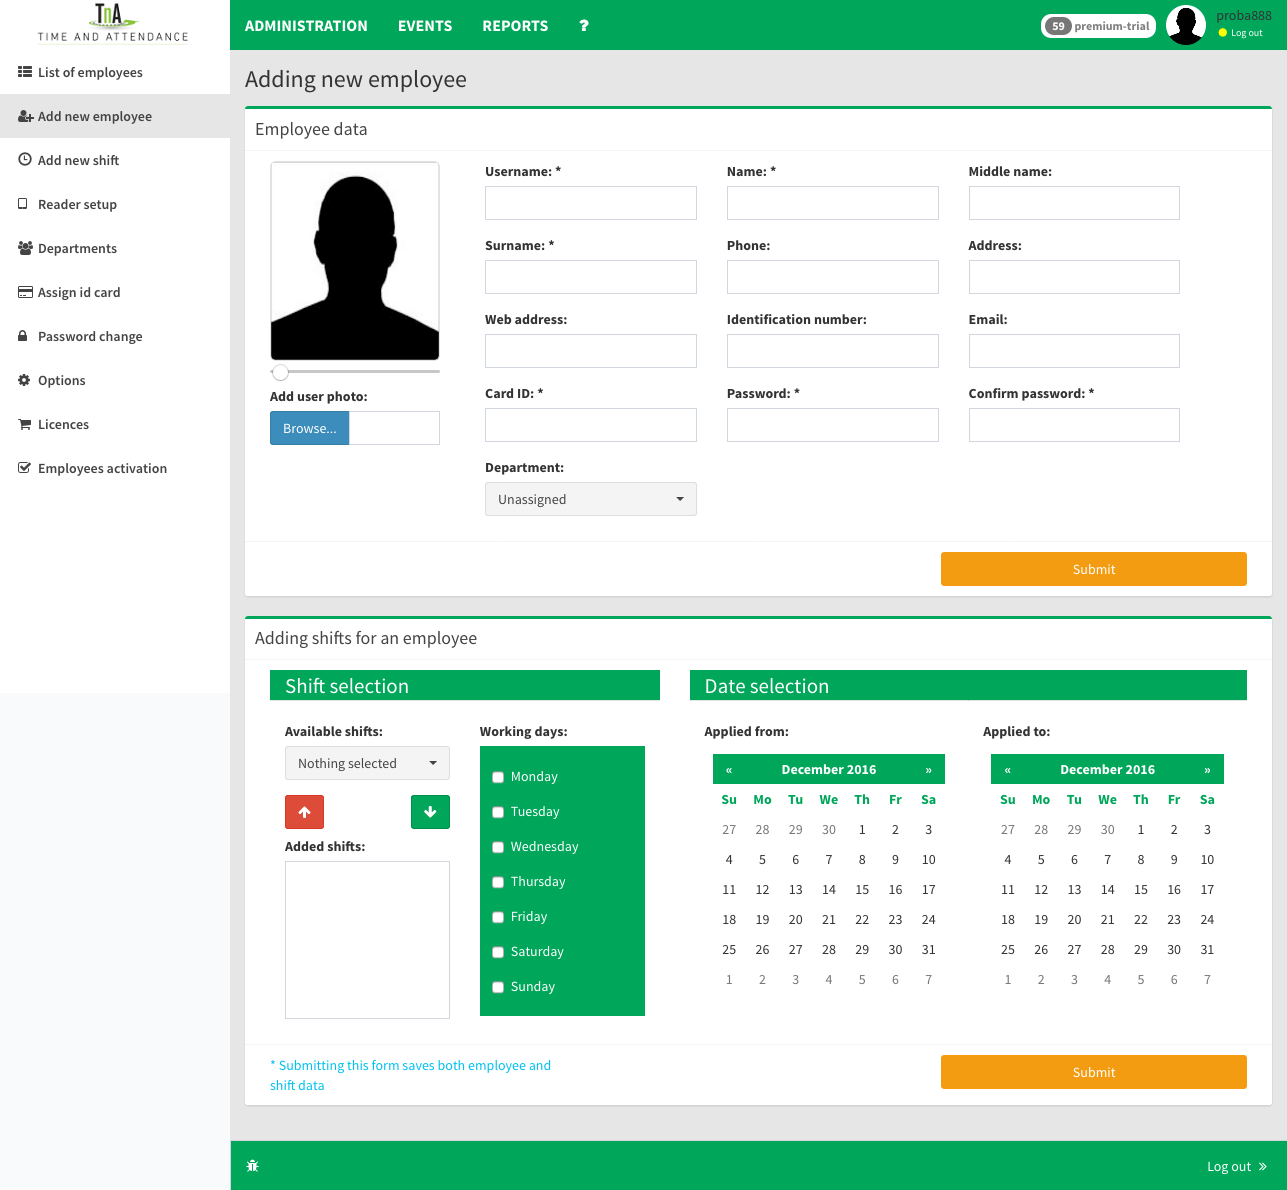 Add new user to system